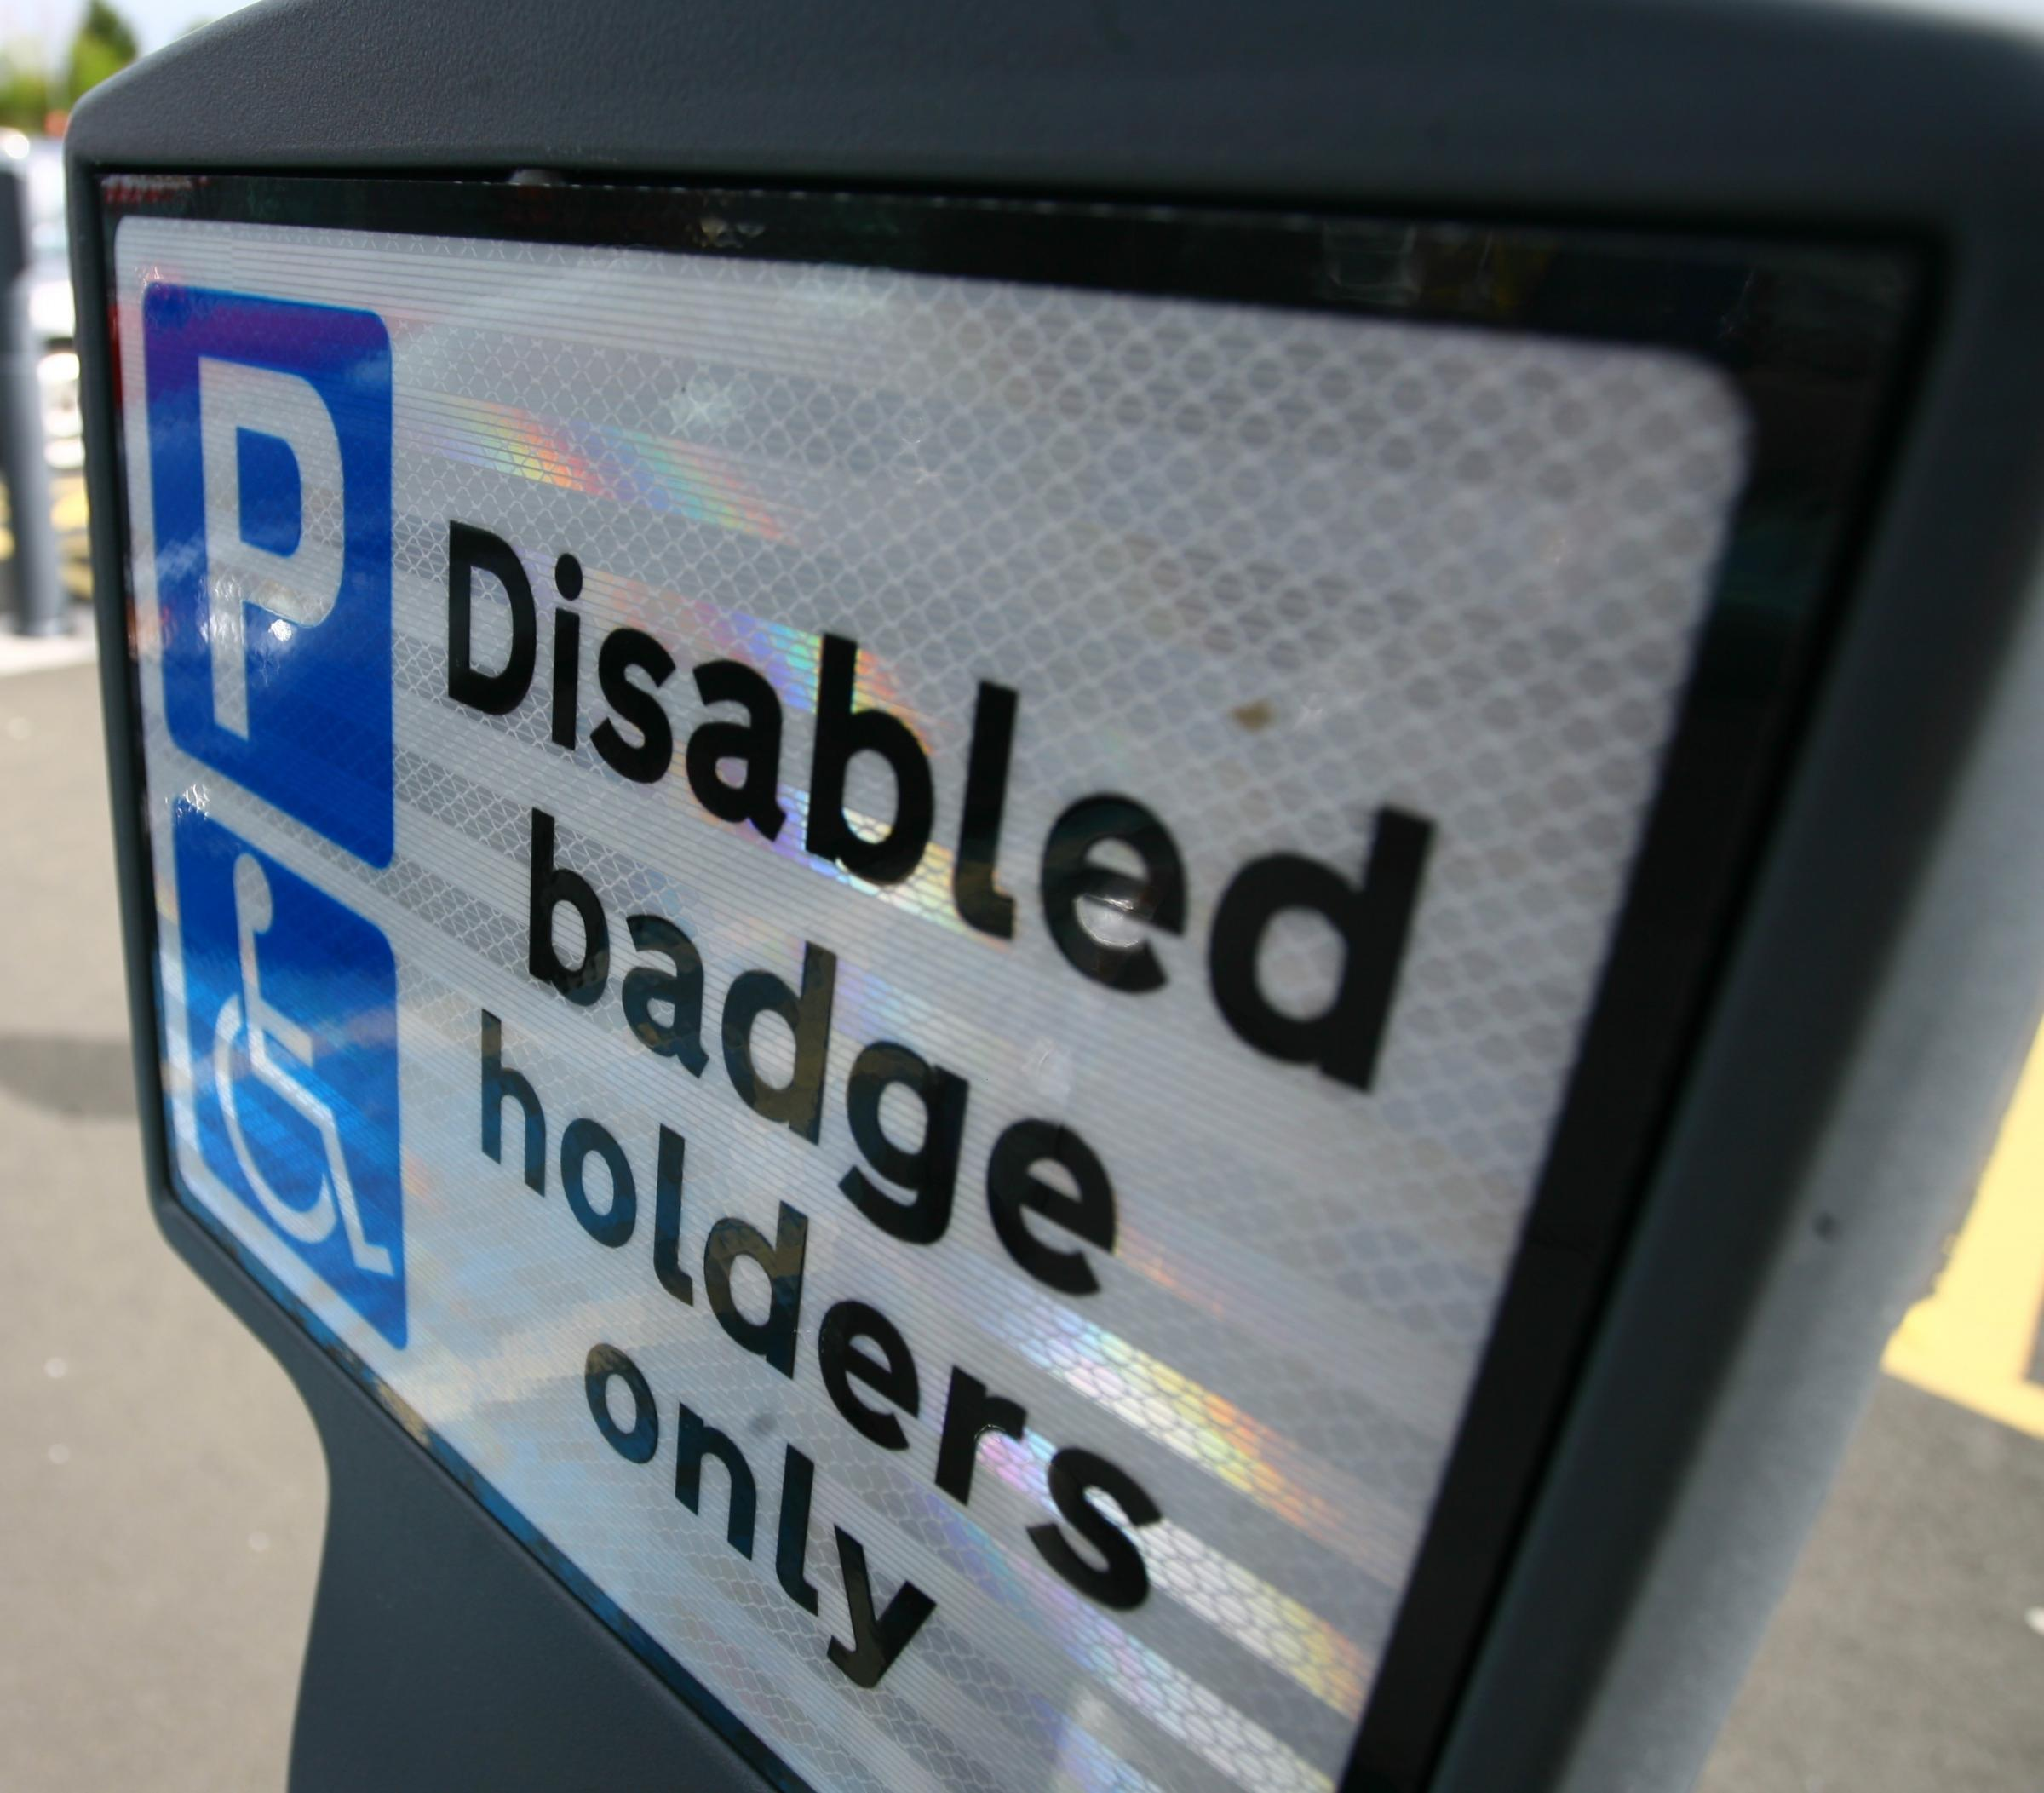 BLUE BADGE: Several ways to apply.